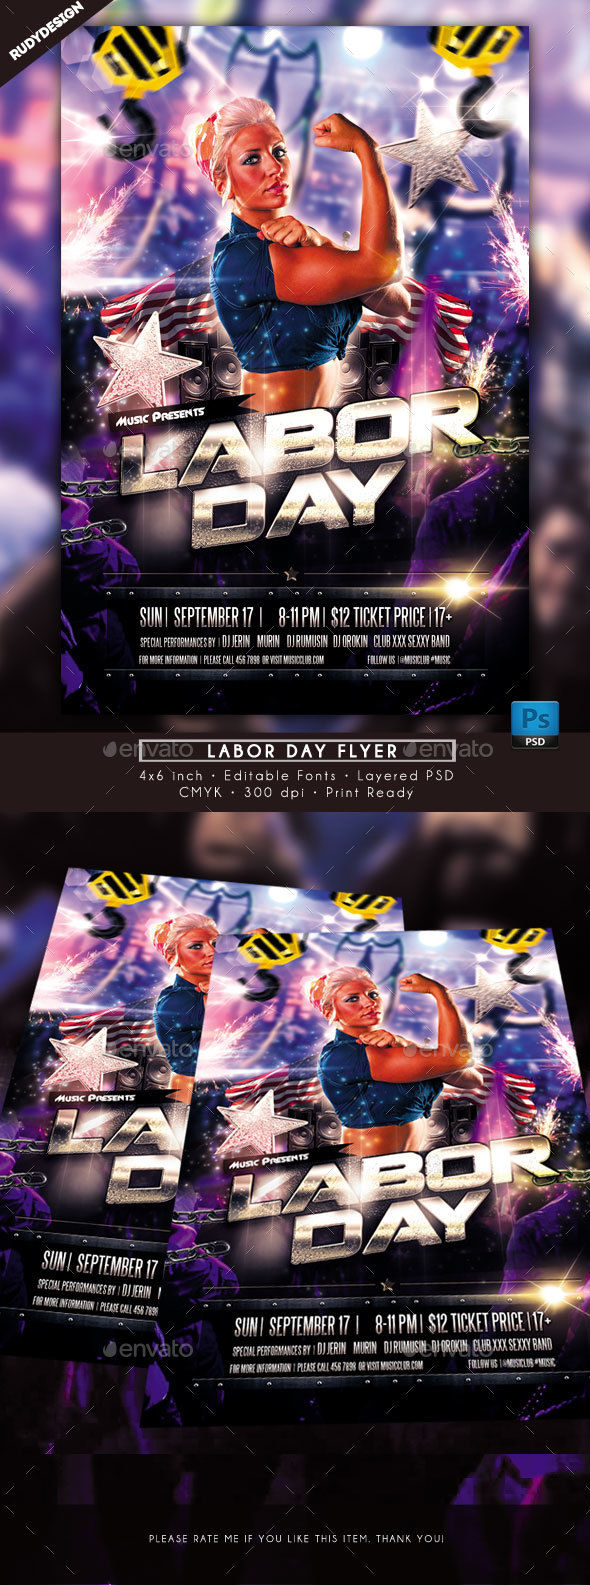 Labor Day Flyer by Rudydesign (Labor Day party flyer)